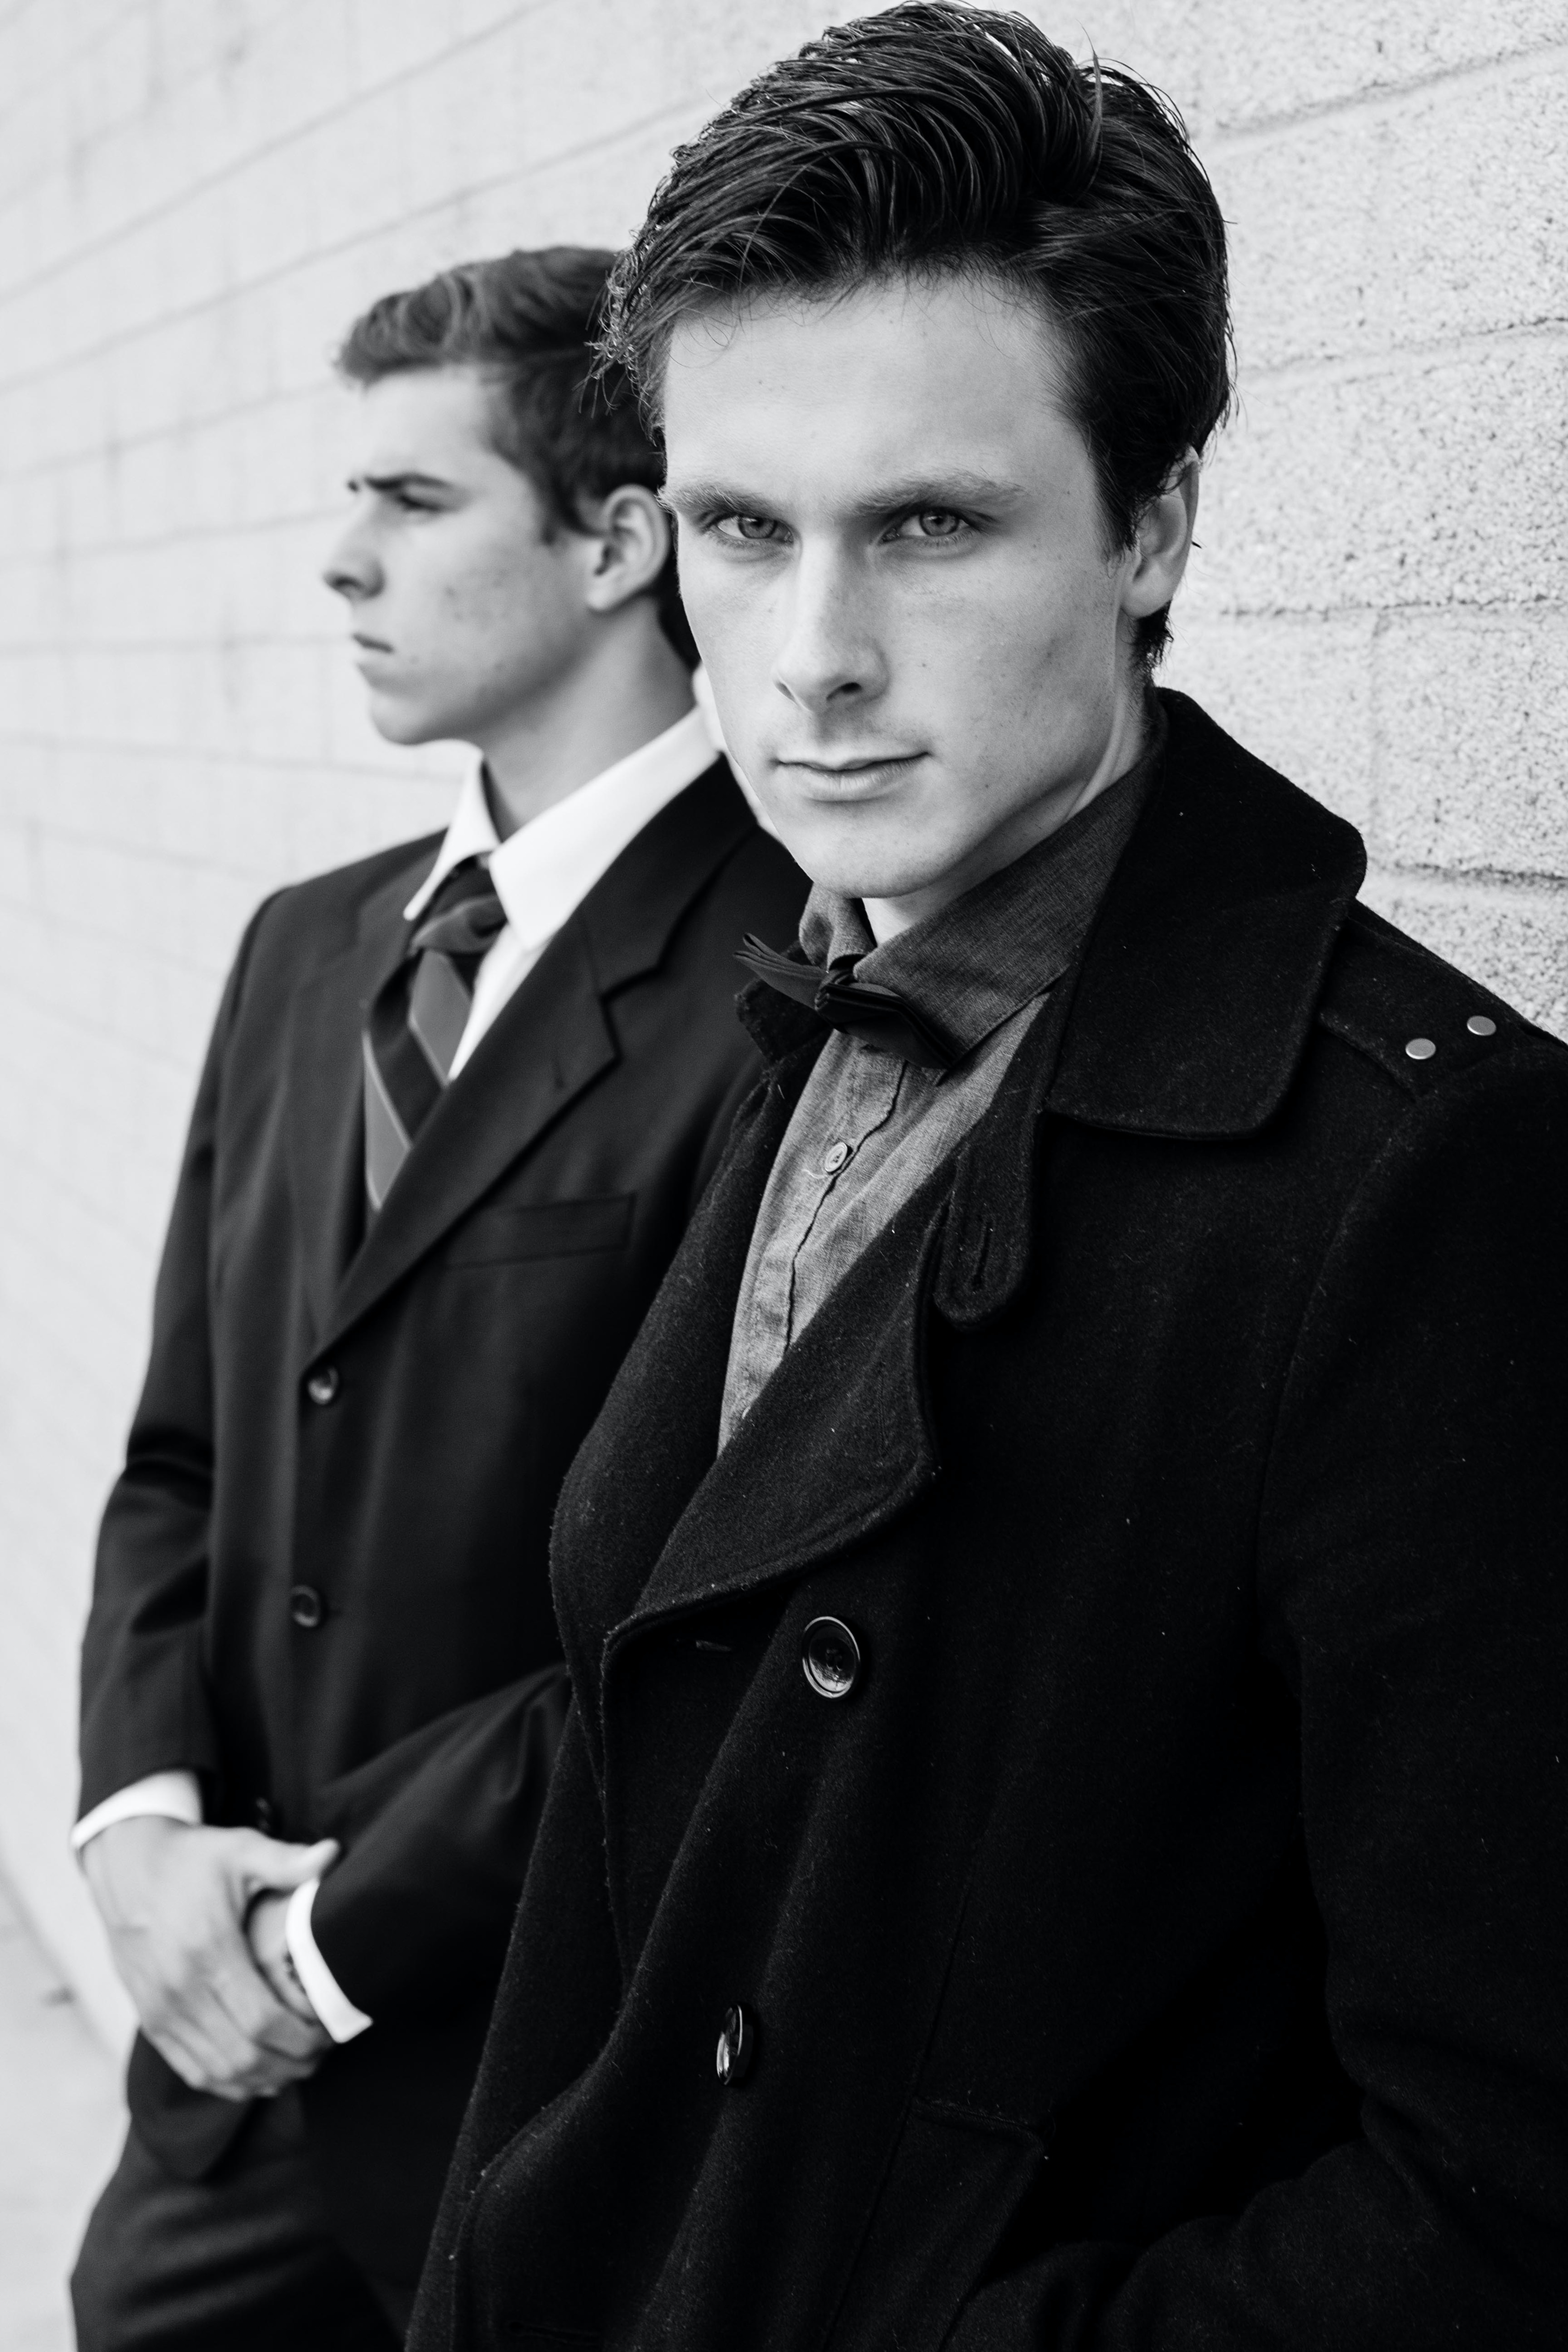 A black-and-white shot of two young men in formal attire near a wall